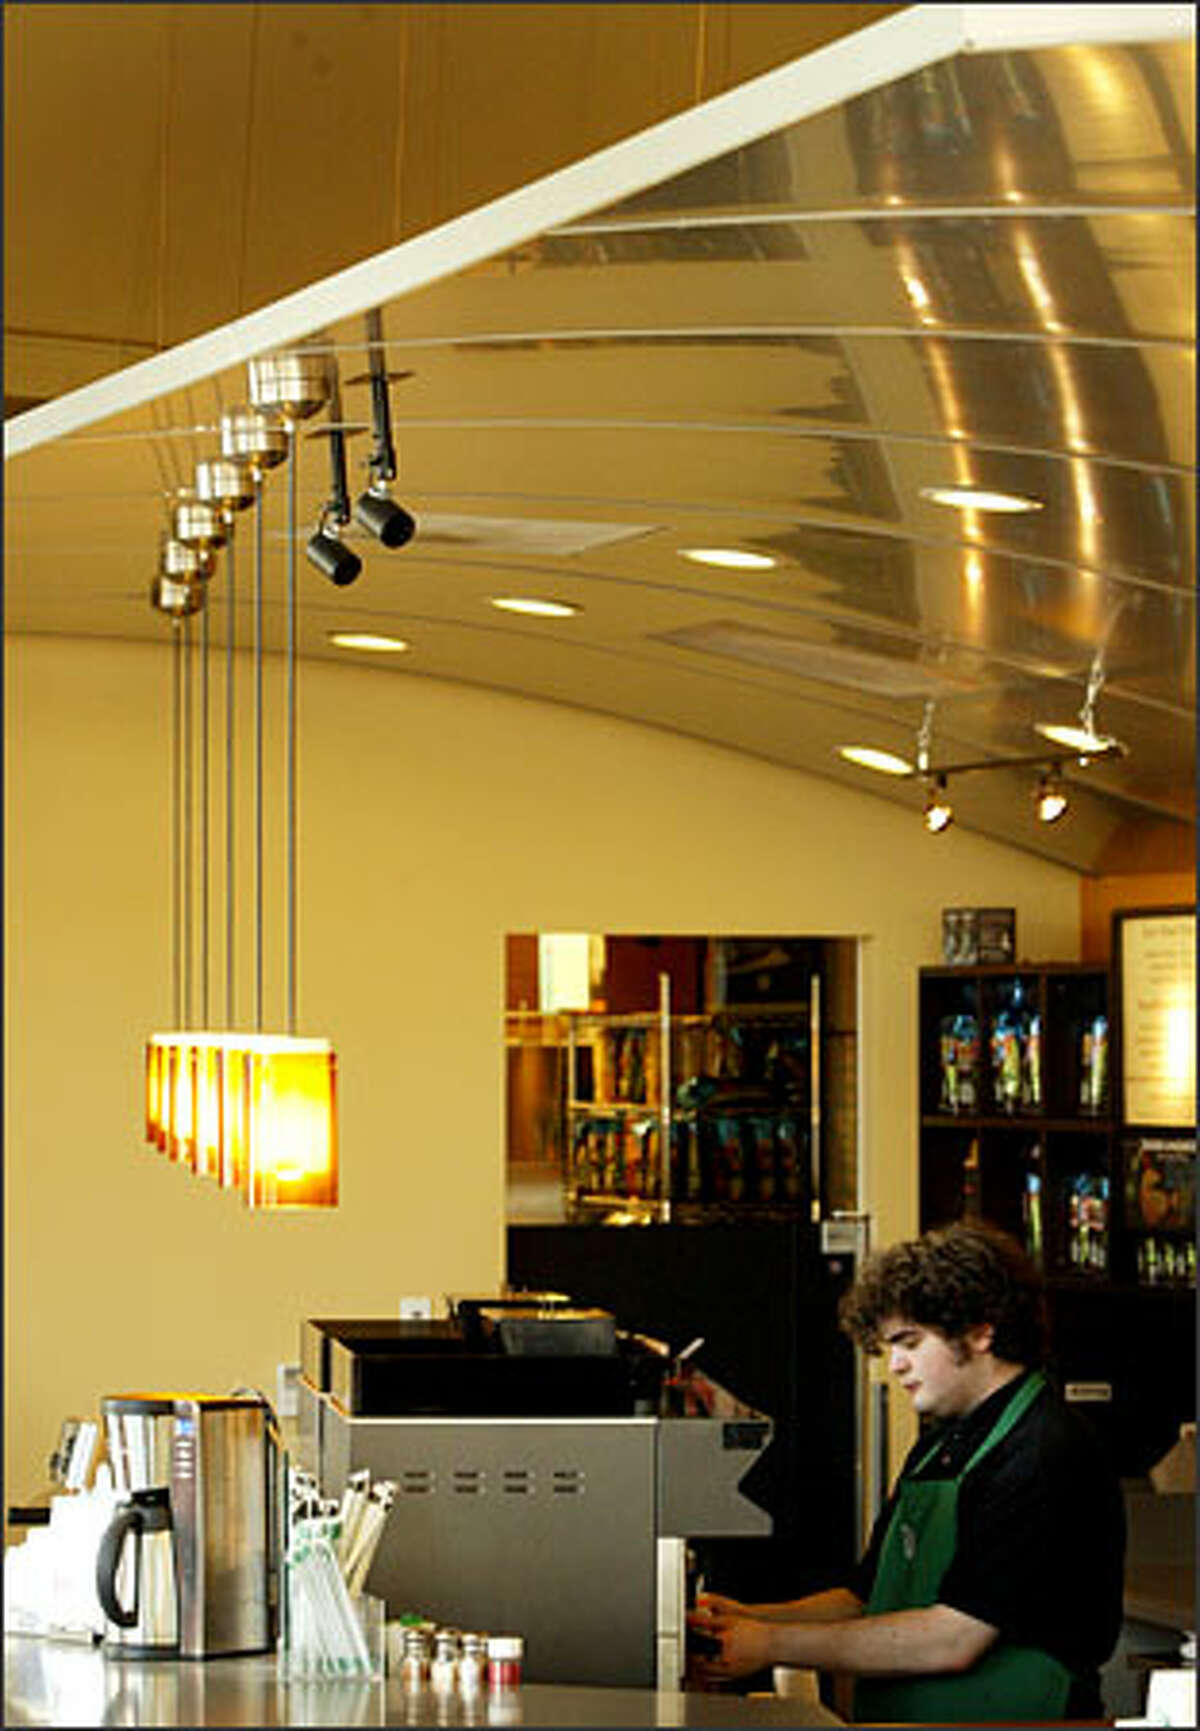 Alec Whitney prepares a drink at Starbucks on 2344 Eastlake Ave., where an elegantly curved aluminum wing over the bar functions both as a dropped ceiling and sculptural intrusion.